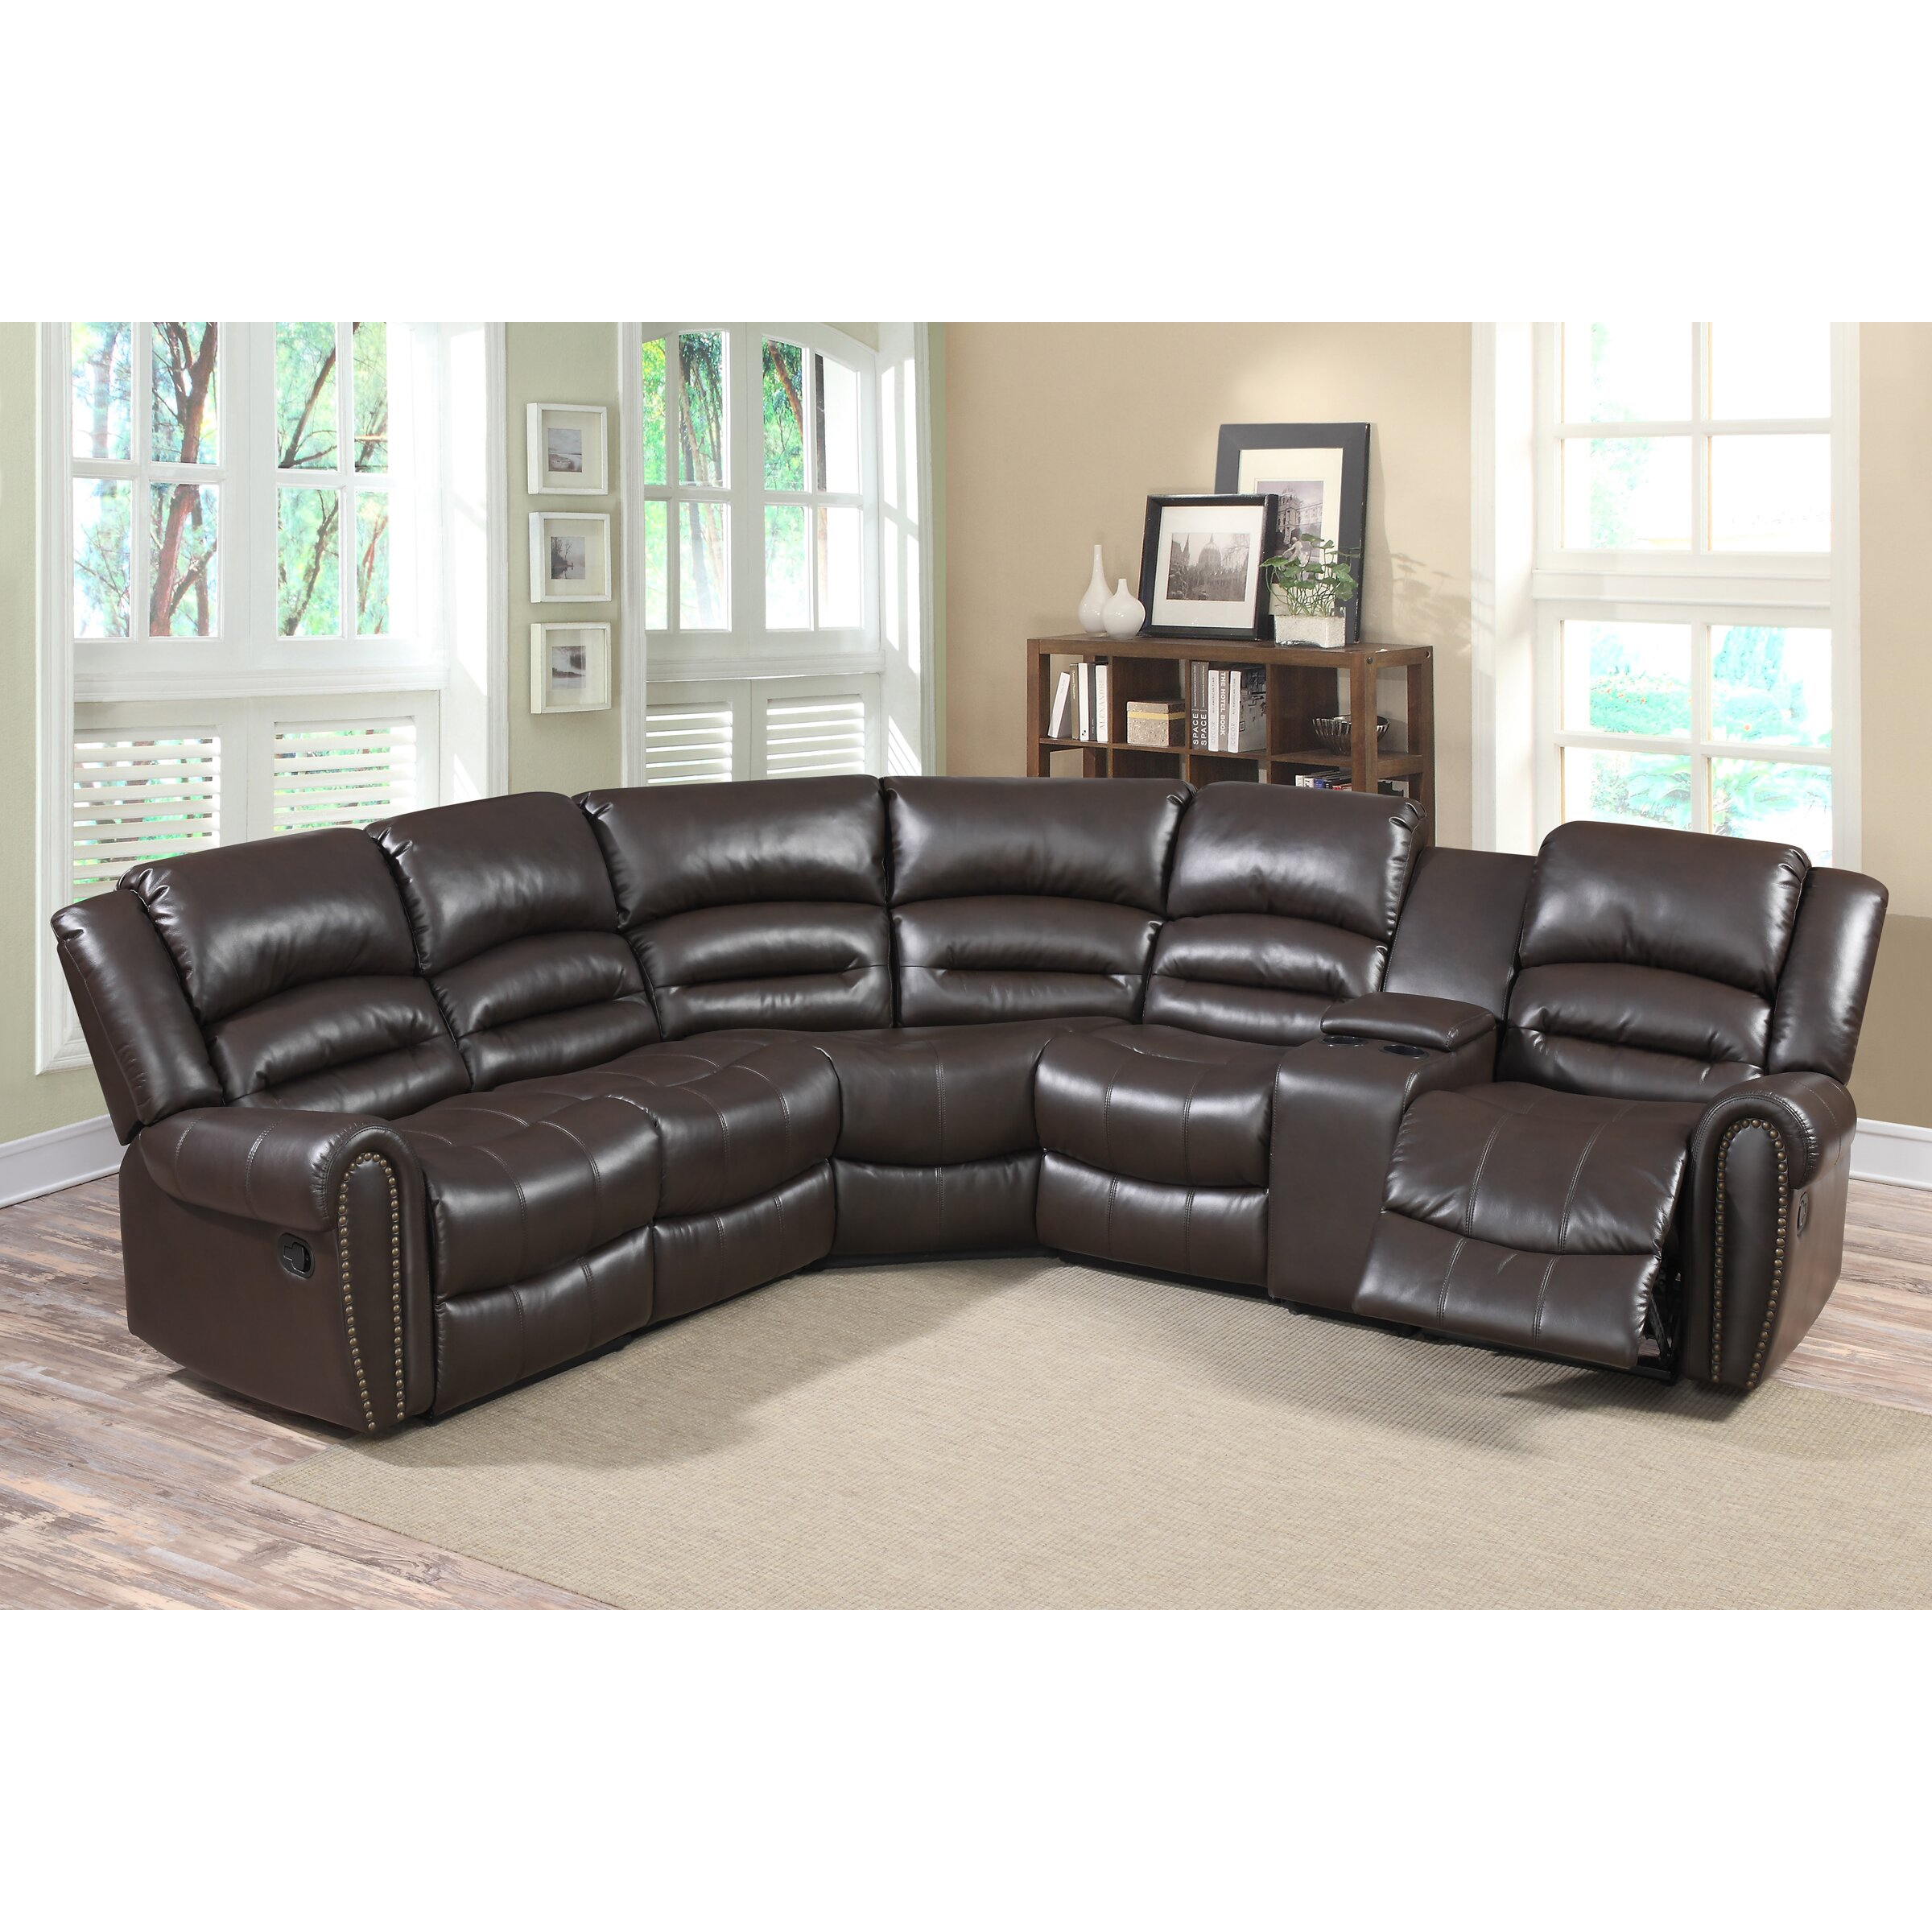 Furniture Living Room Furniture   Sectional Sofas Living In Style